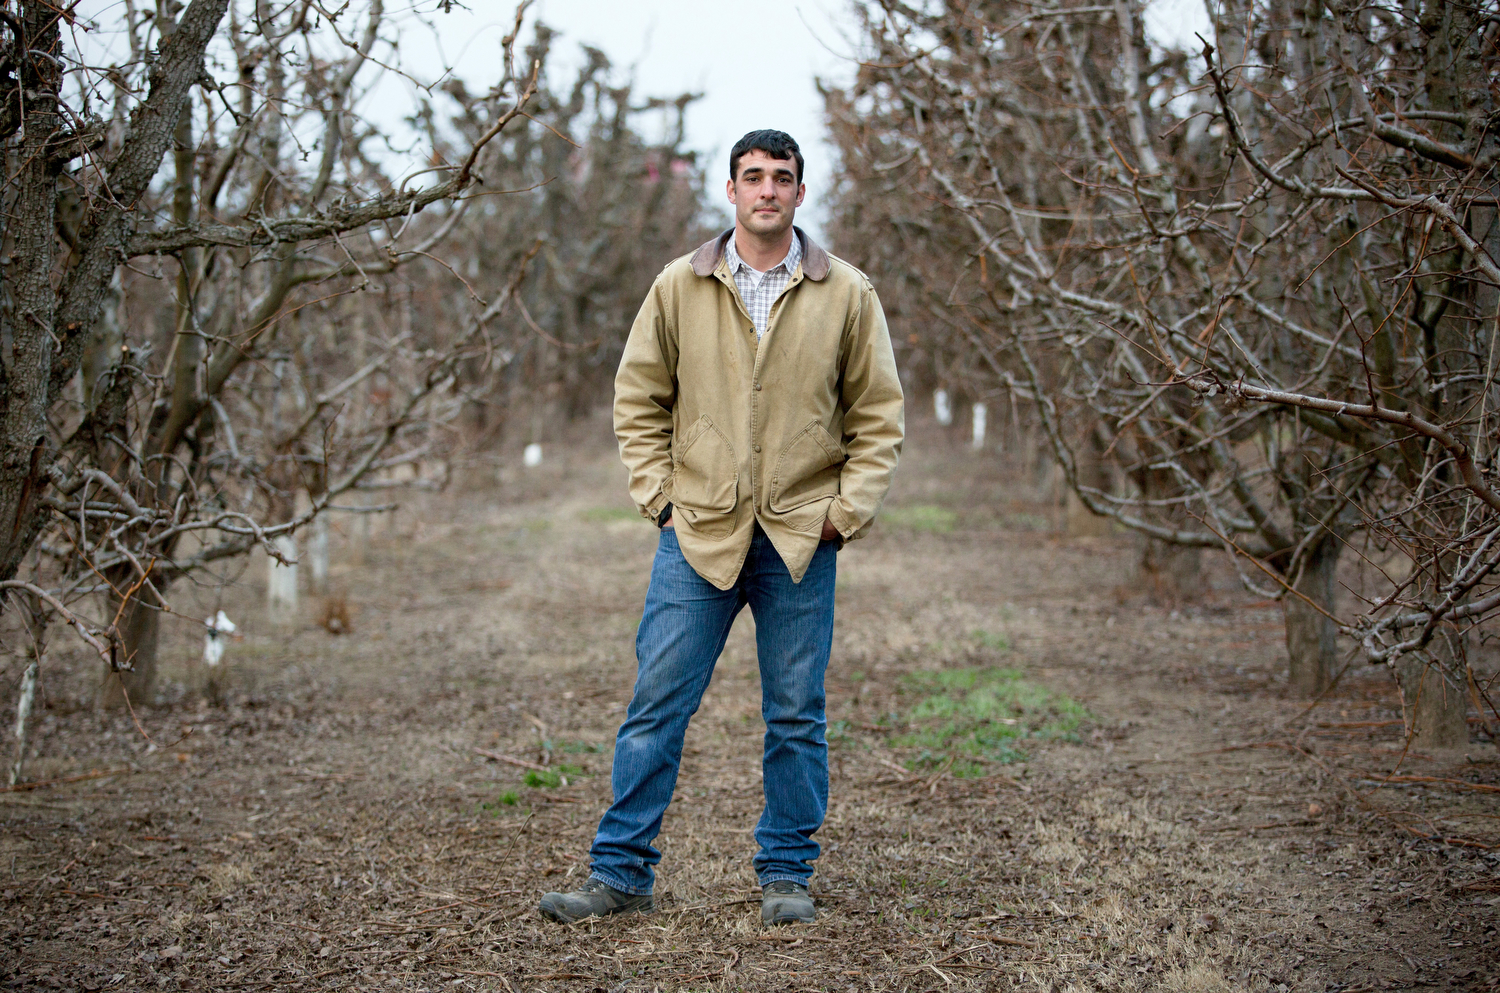 Brett Baker  Baker's family has been growing pears and other crops on Steamboat Slough near Sacramento since the mid-1800s.